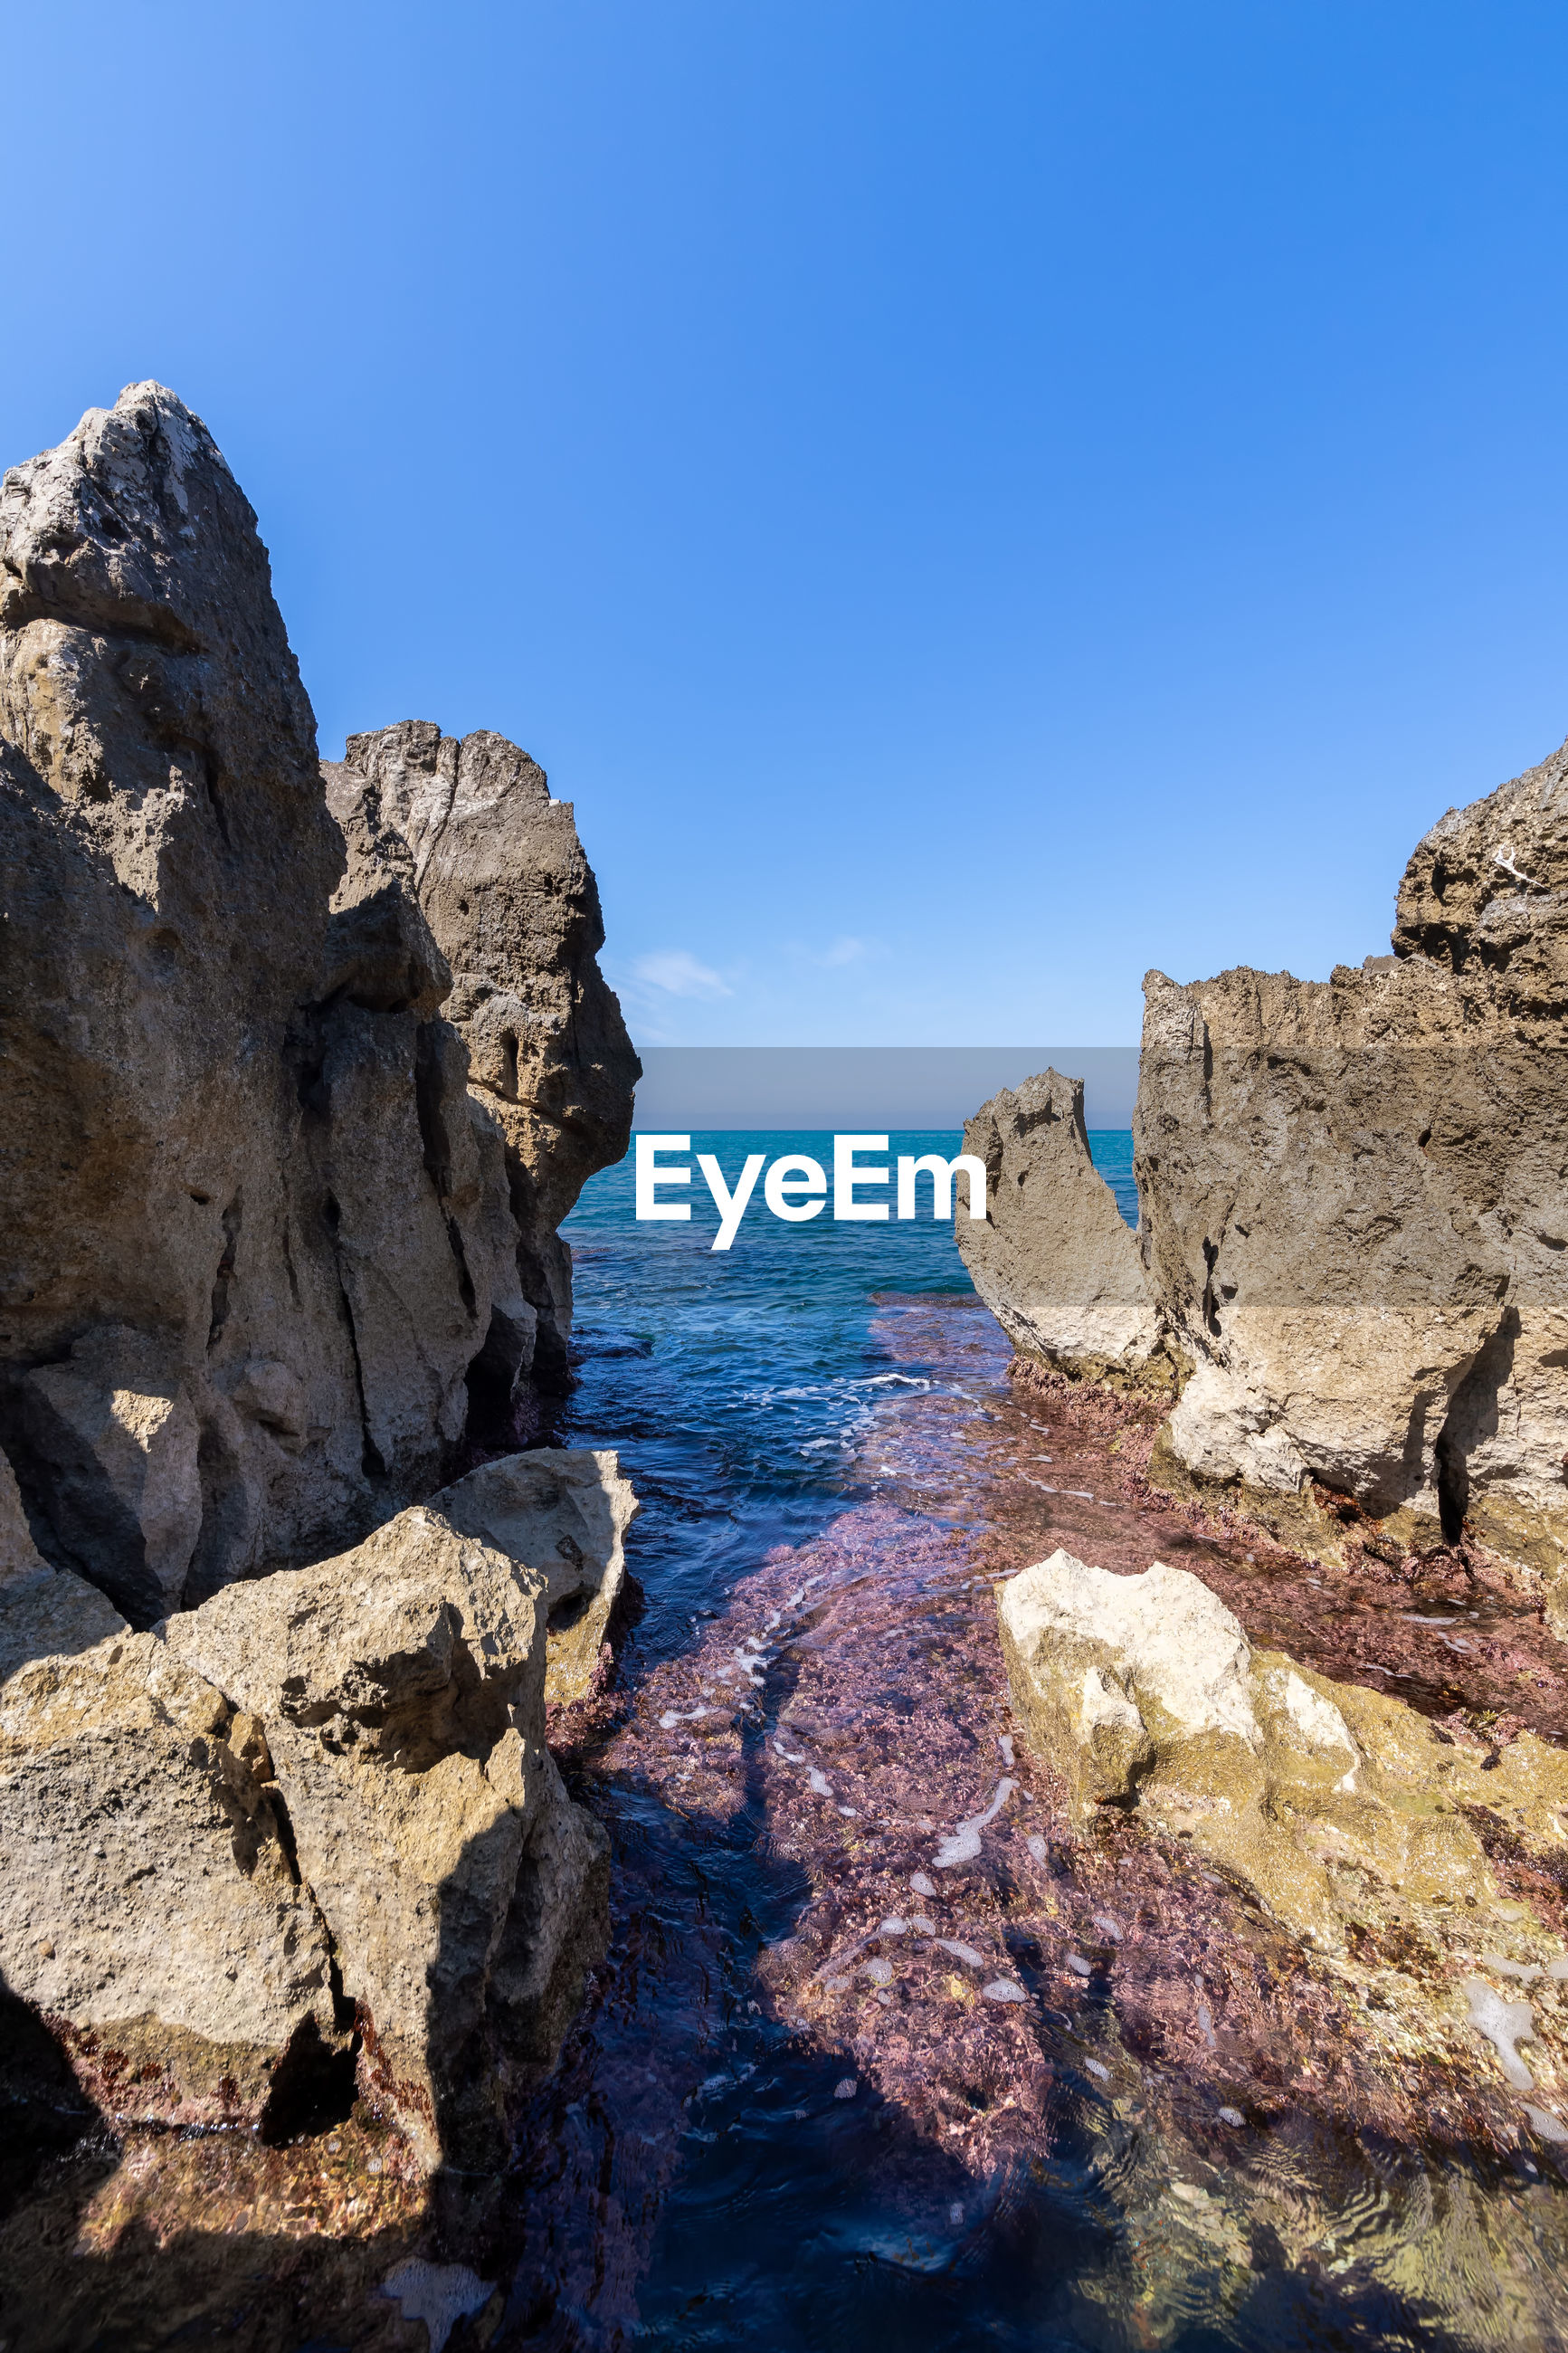 ROCK FORMATION ON SEA AGAINST CLEAR BLUE SKY